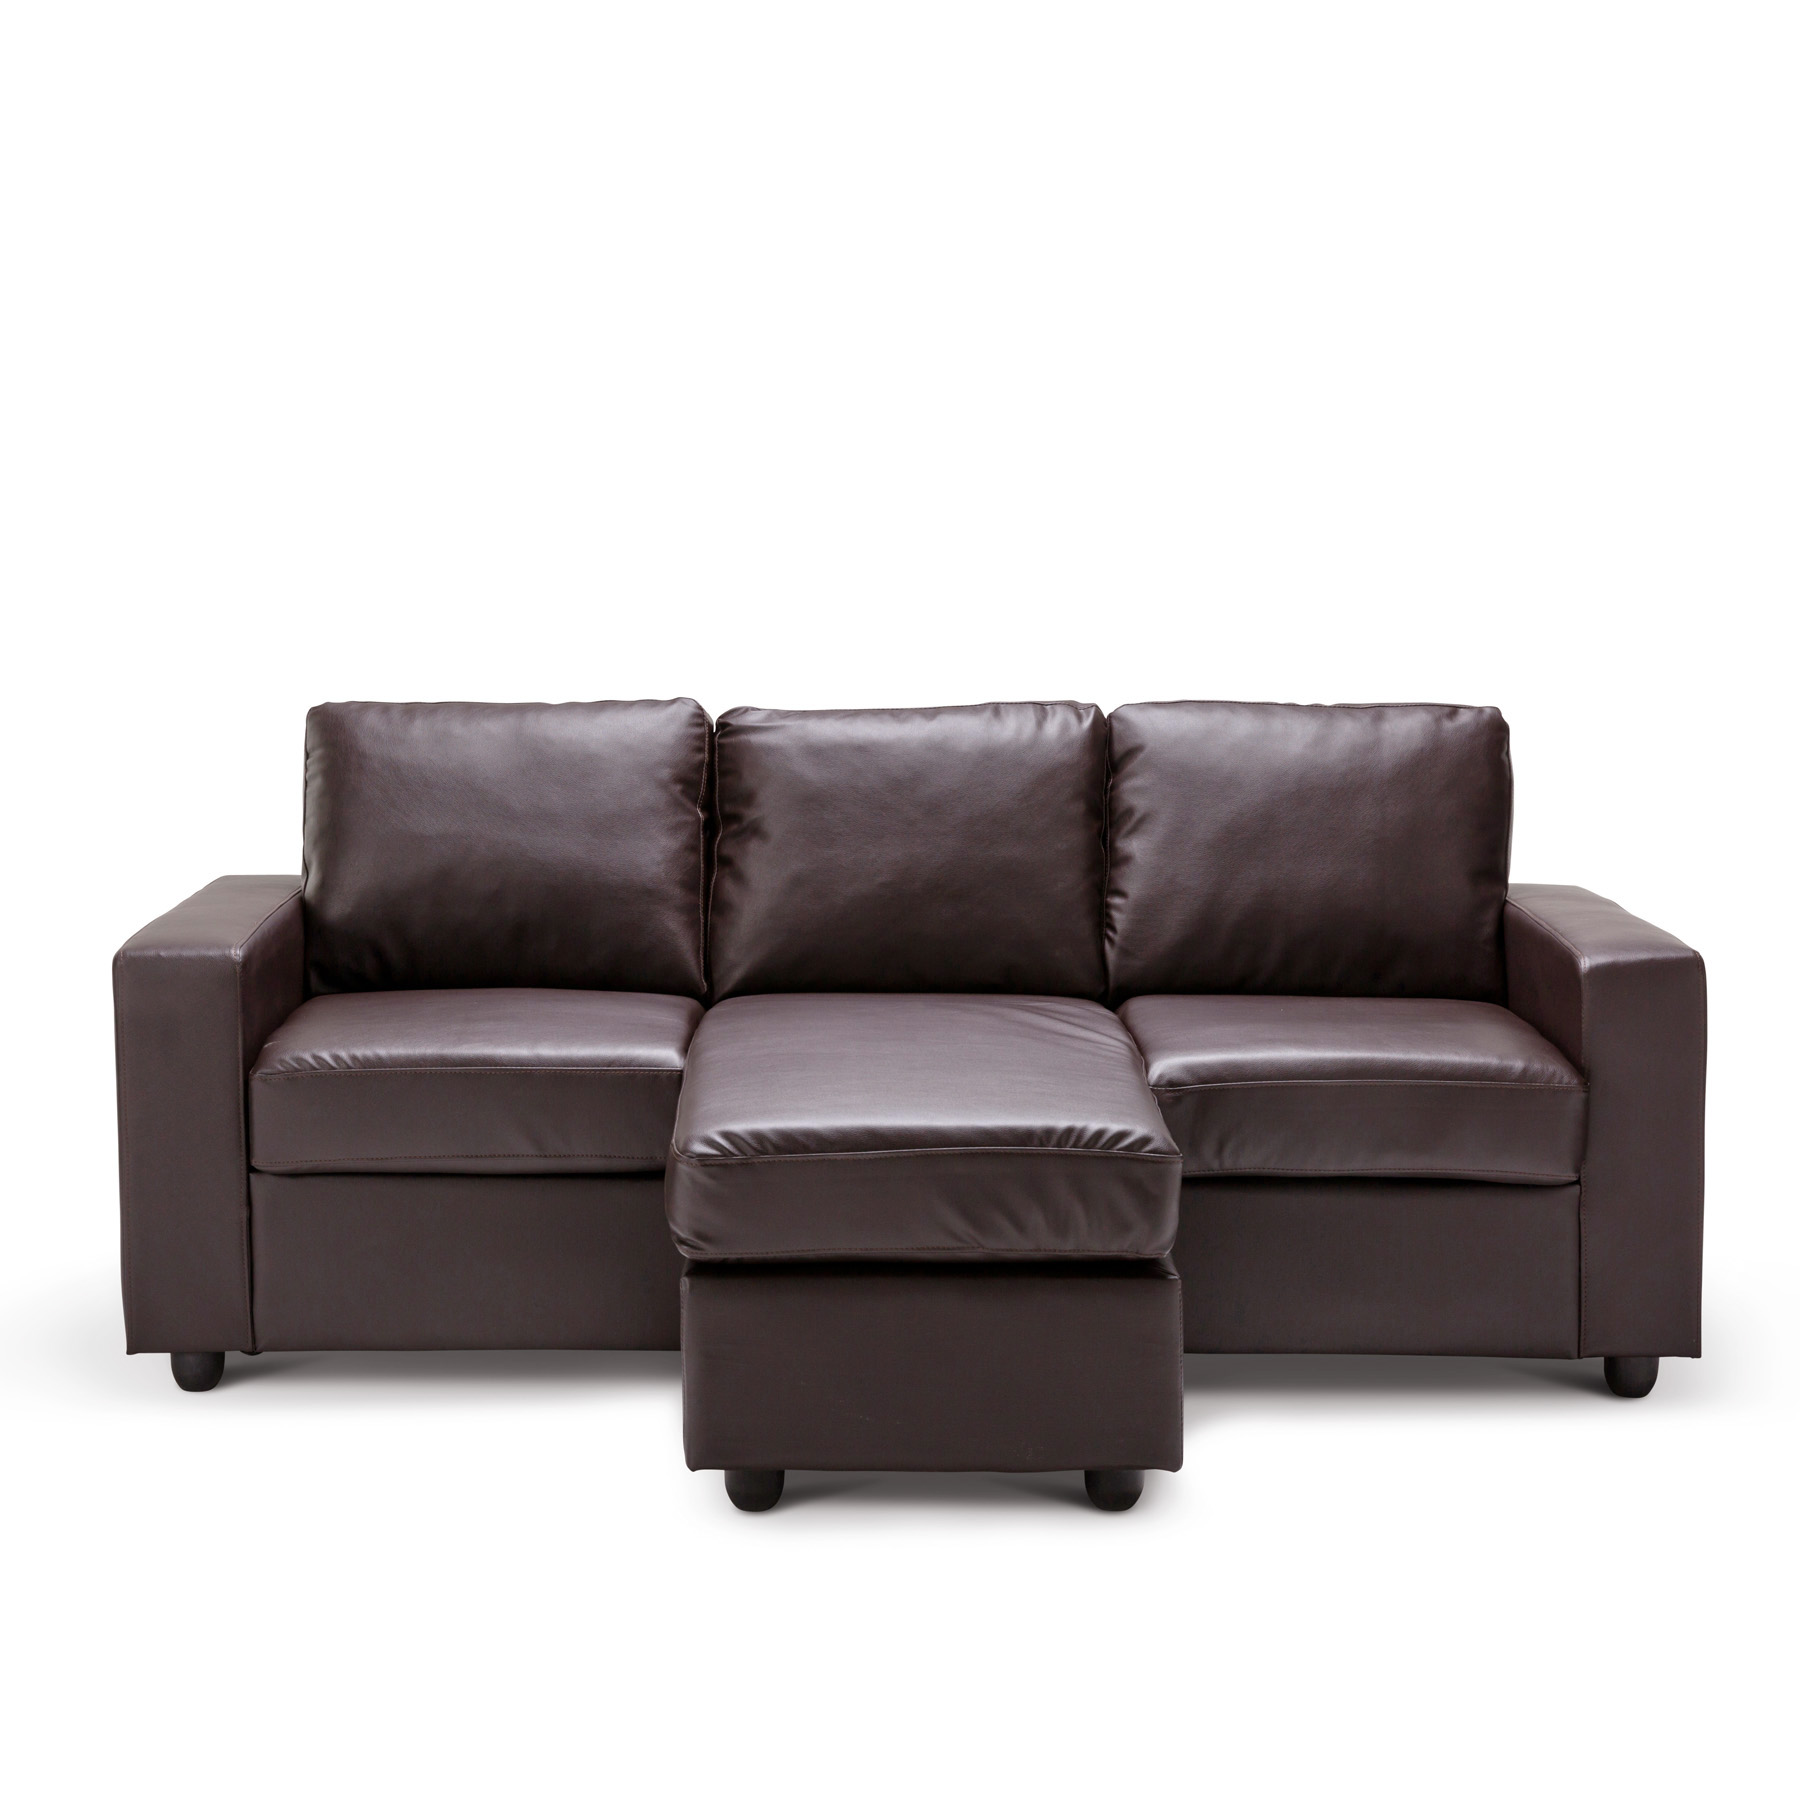 L Shaped Brown Leather Sofa Contemporary L Shaped Brown Leather Sectional Sofa With Leather L